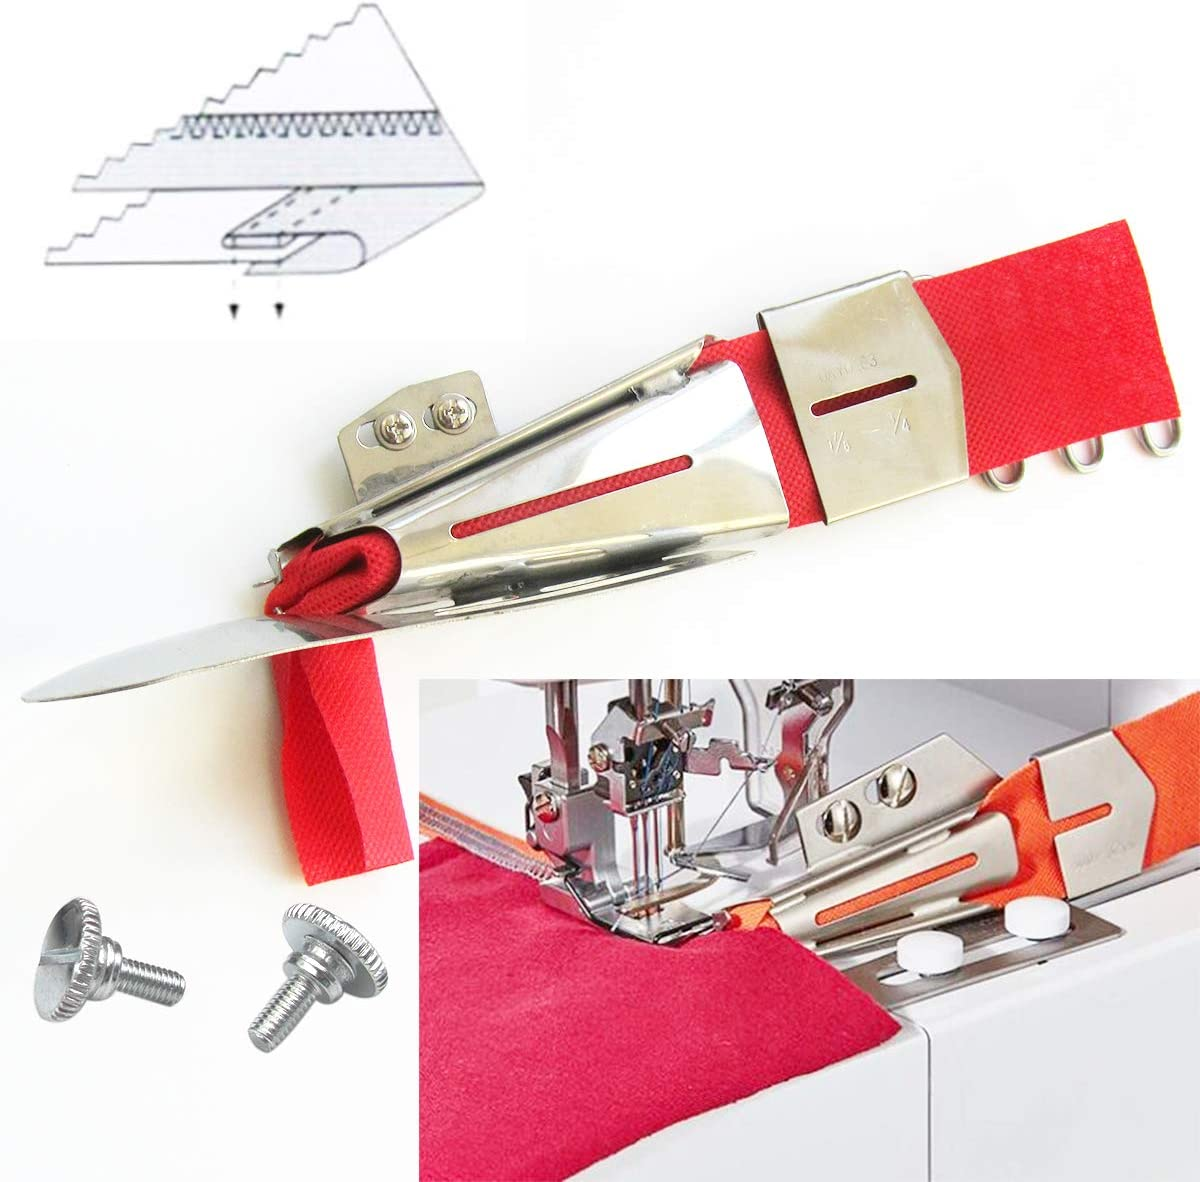 Tape Cut Size 3//4 Finish Size 1//4 A-Type CKPSMS brand KP-103 Clean Finish Top and Raw Finish Bottom COLLARETTE Binder Attachment for Industrial Flatbed Cover Stitch Sewing Machines